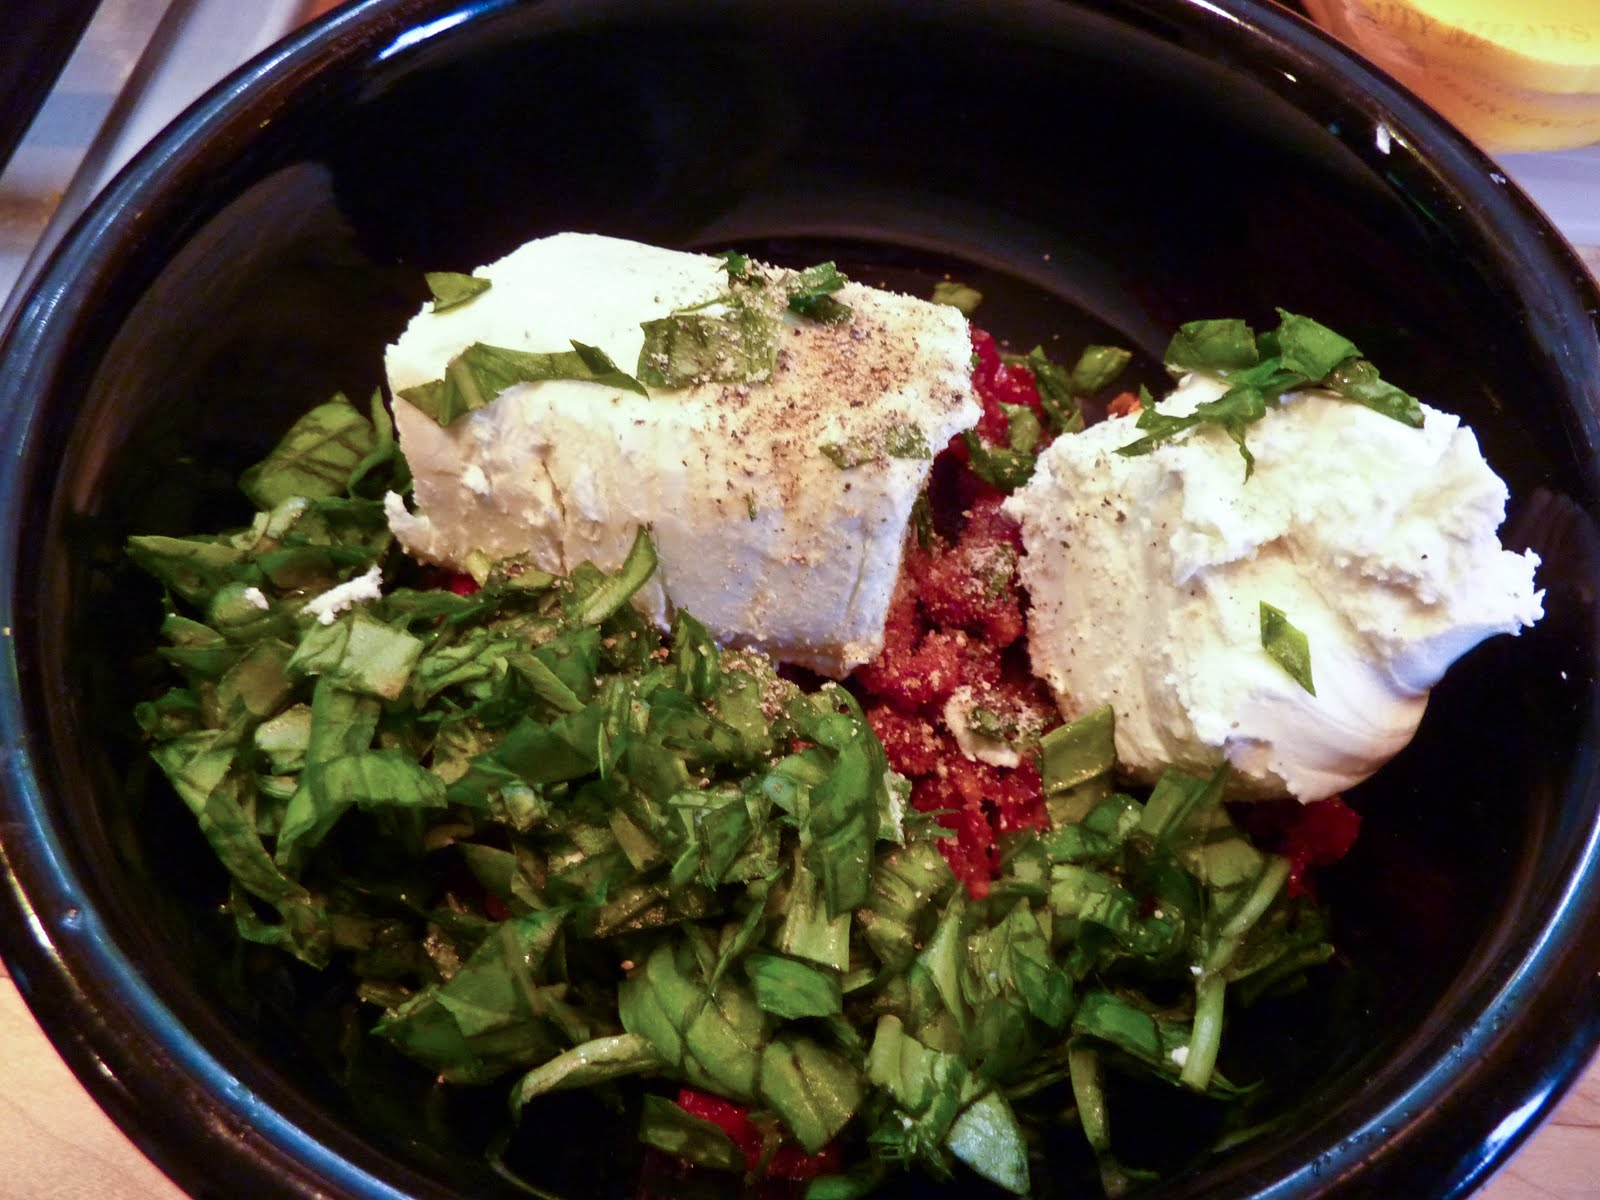 ... Chicken Breasts Stuffed with Goat Cheese, Sun-Dried Tomatoes and Basil